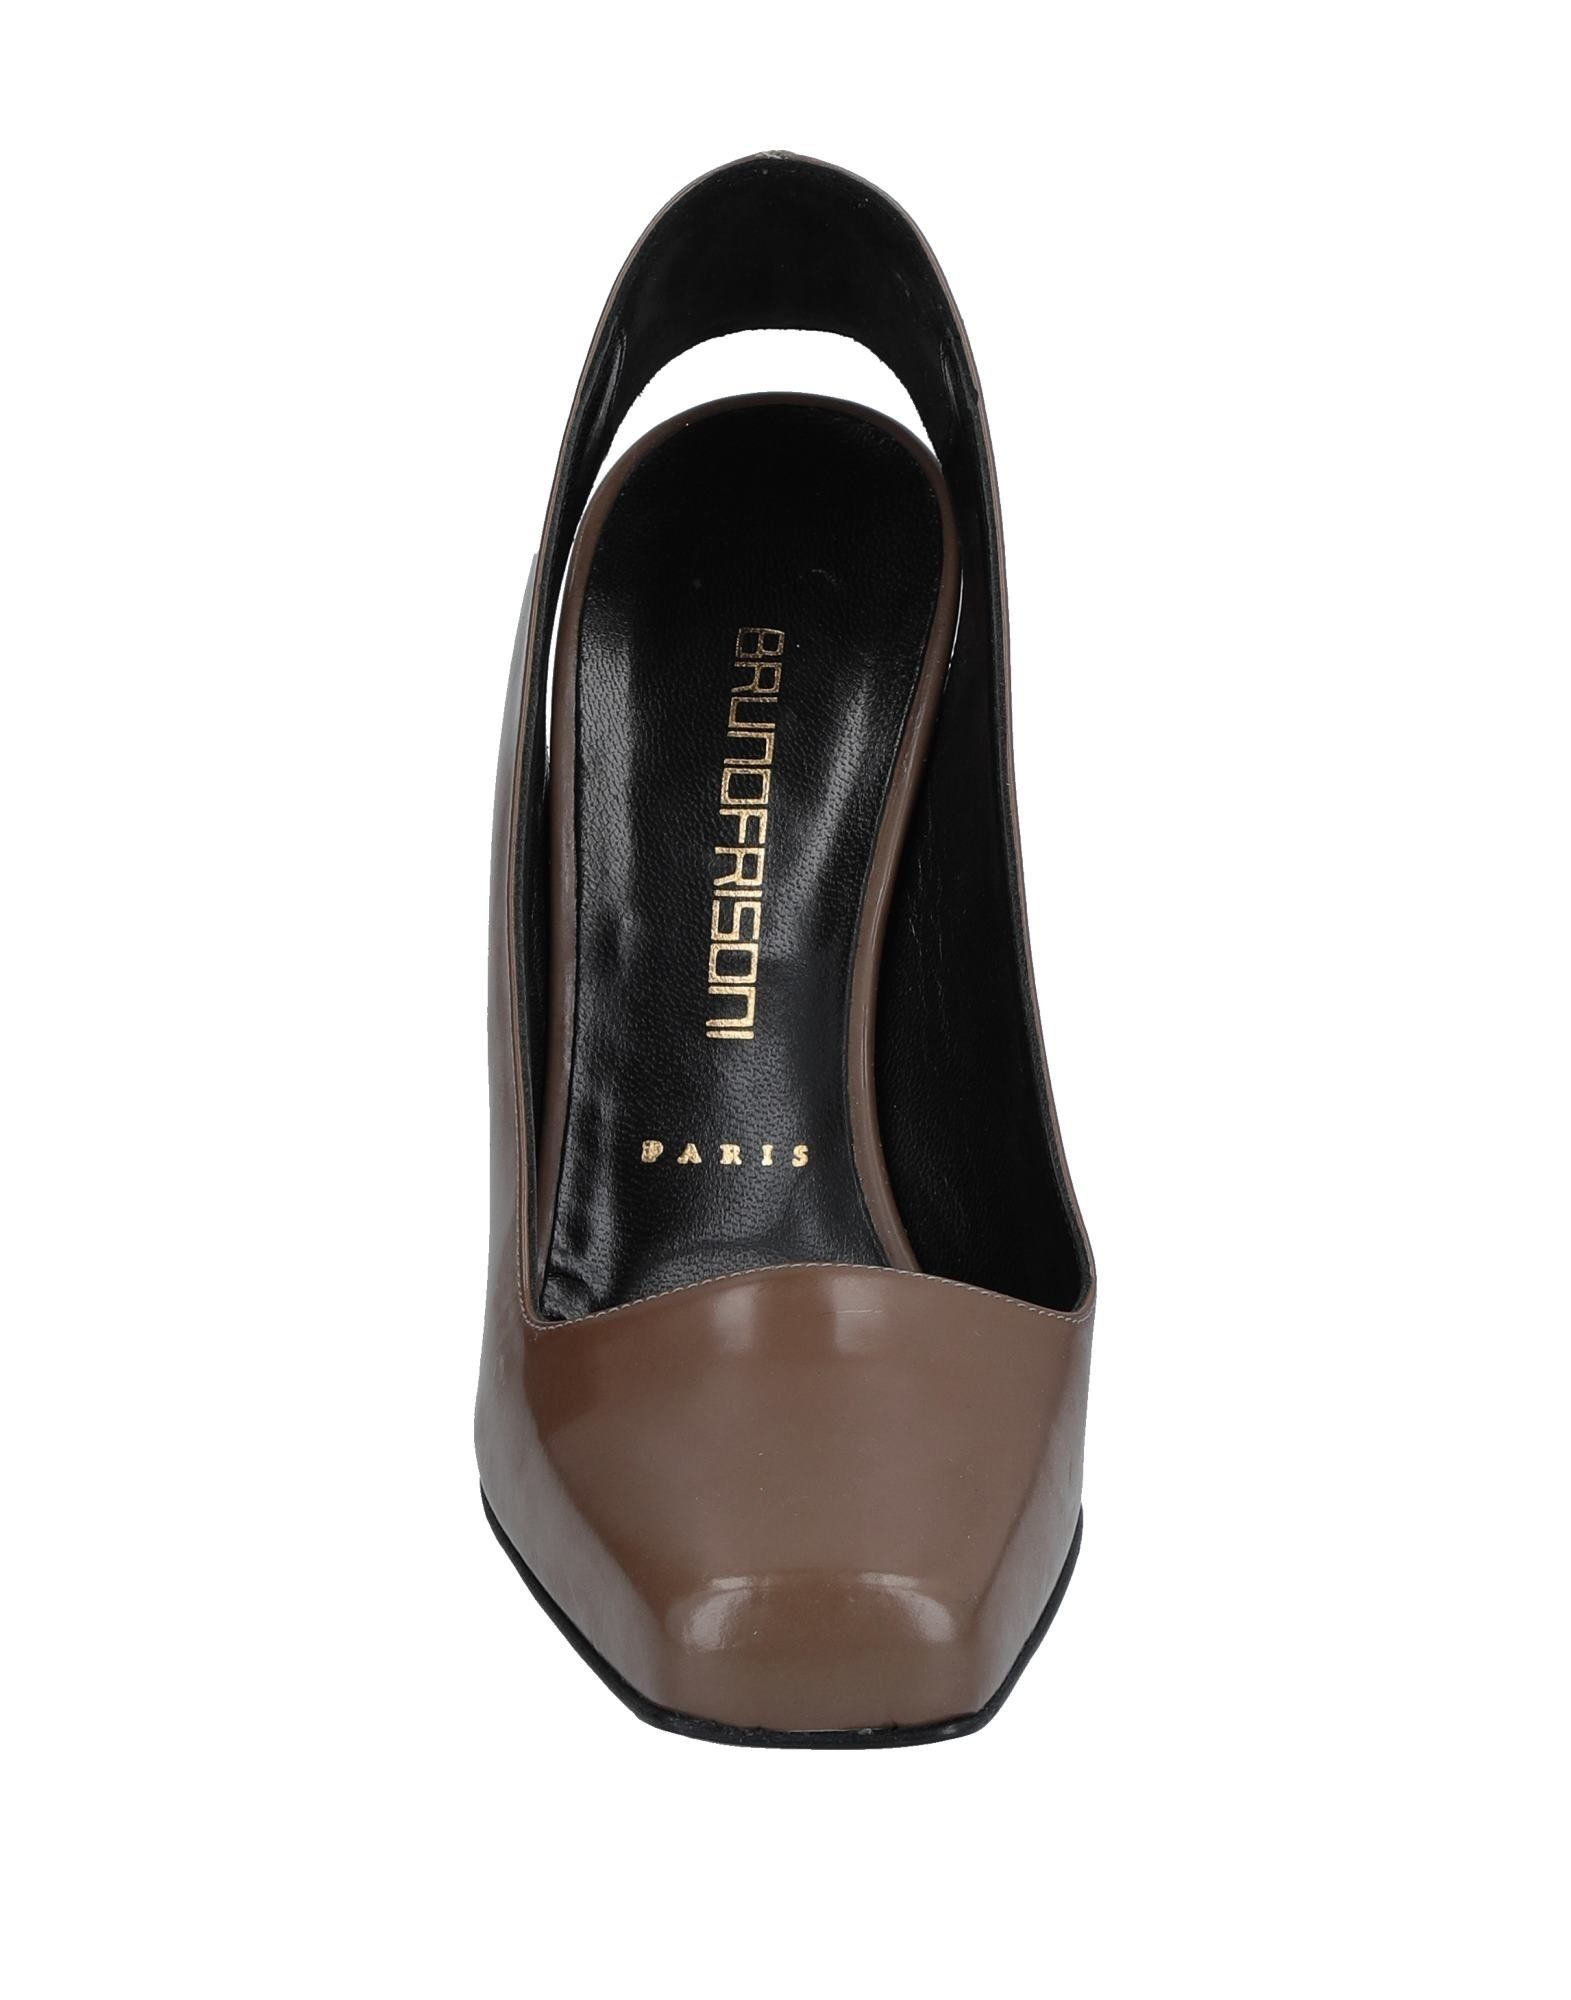 Stilvolle billige Schuhe Bruno  Frisoni Pumps Damen  Bruno 11532826XO d11903